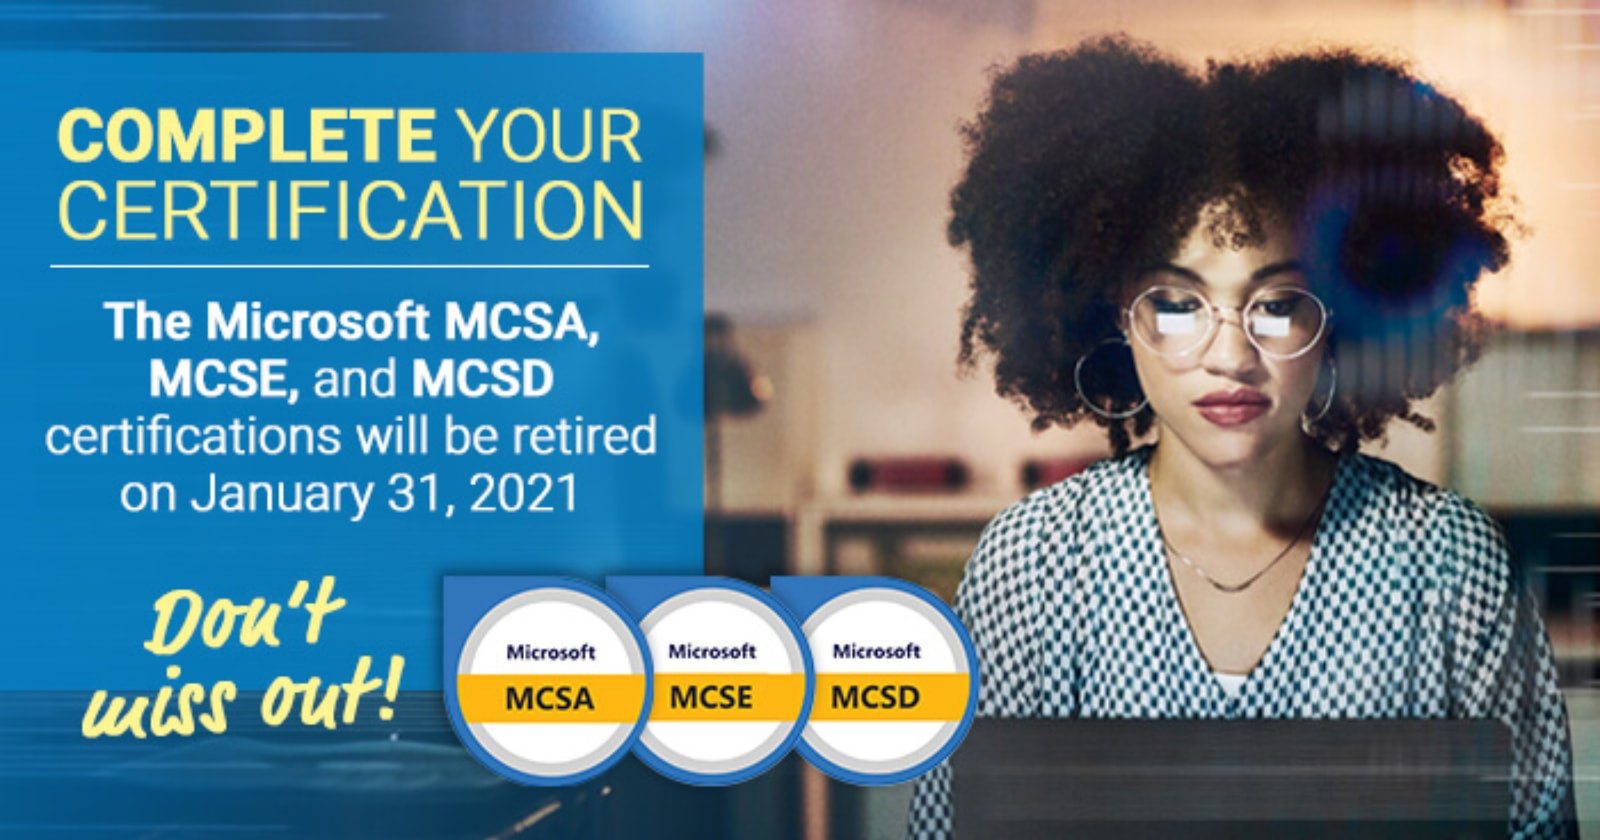 The time to start and complete your MCSA, MCSD, and MCSE certification paths